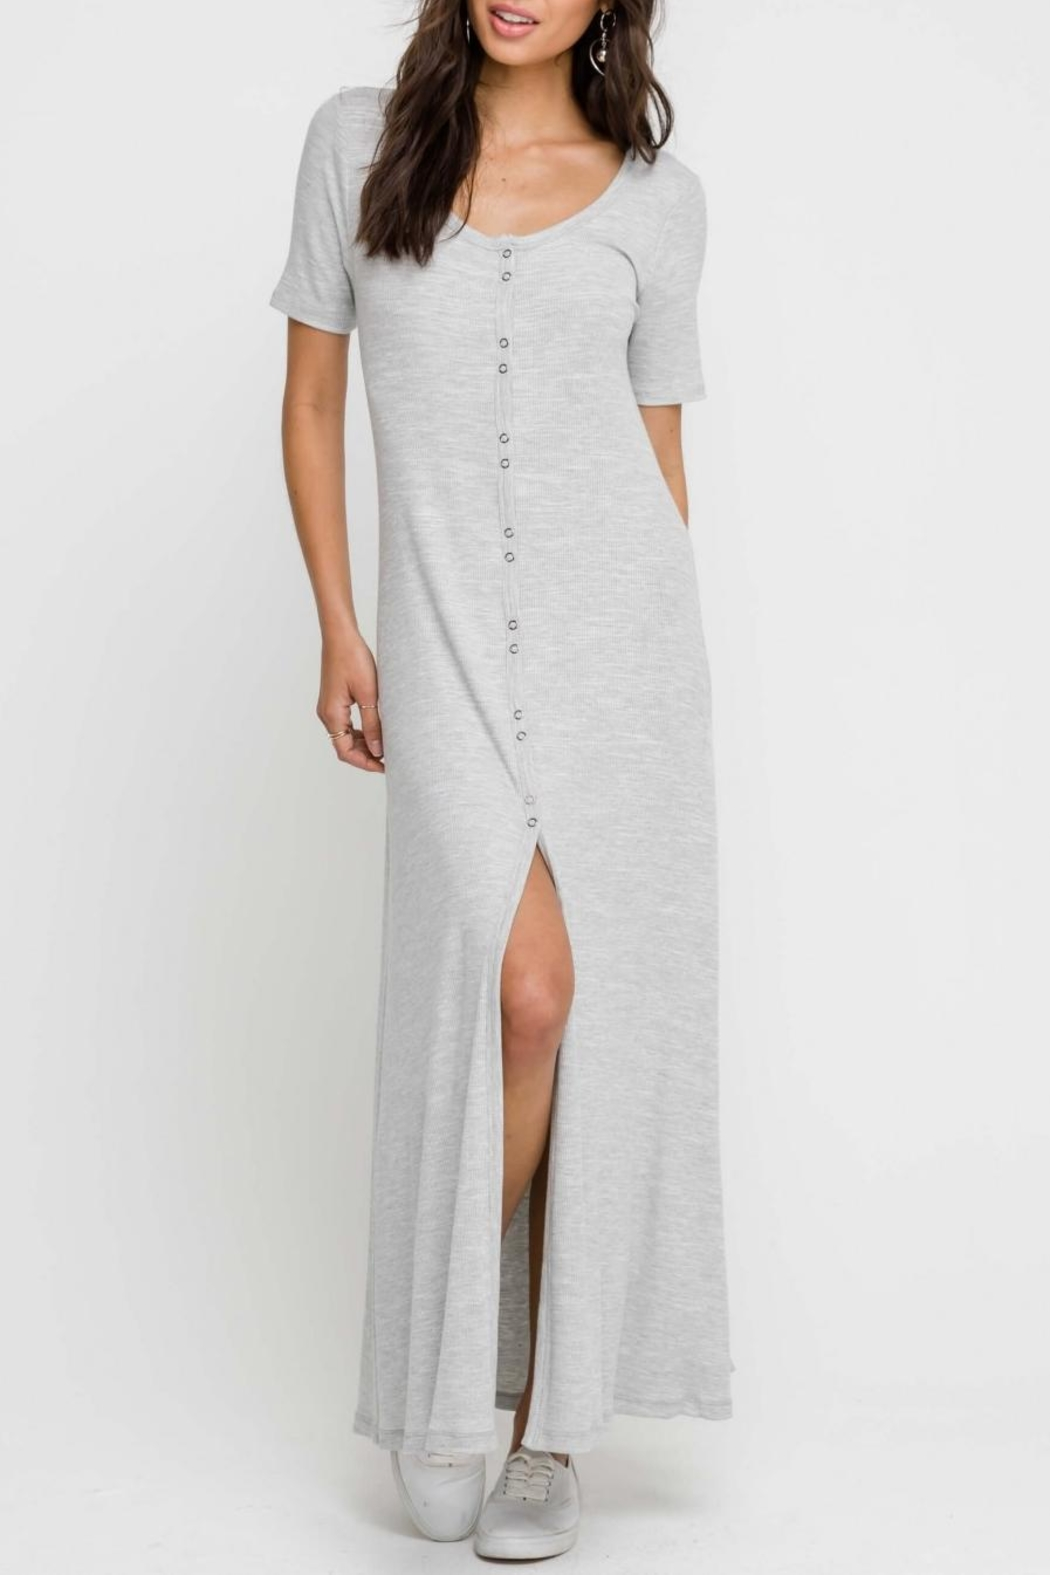 Lush Heather-Grey Button-Down Dress - Front Full Image